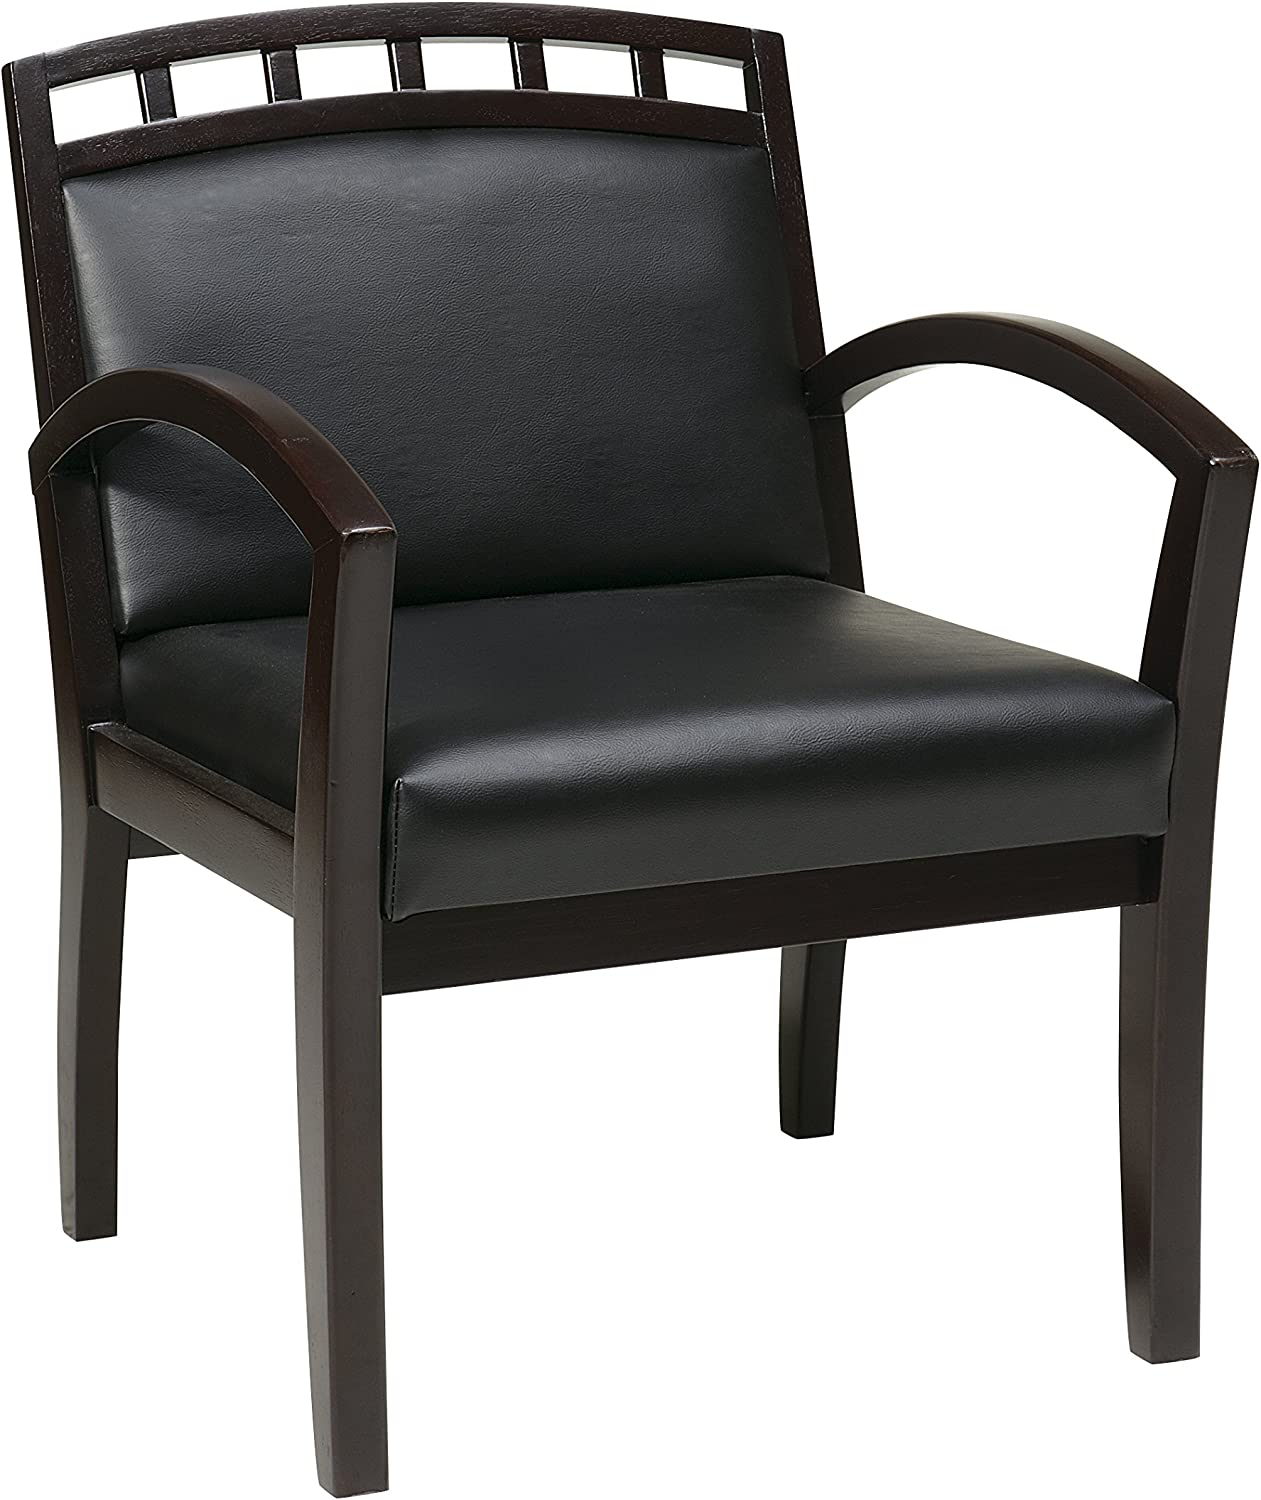 WorkSmart Office Star Deluxe Wood Crown Back Chair with Espresso Finish Base and Legs, Black Faux Leather